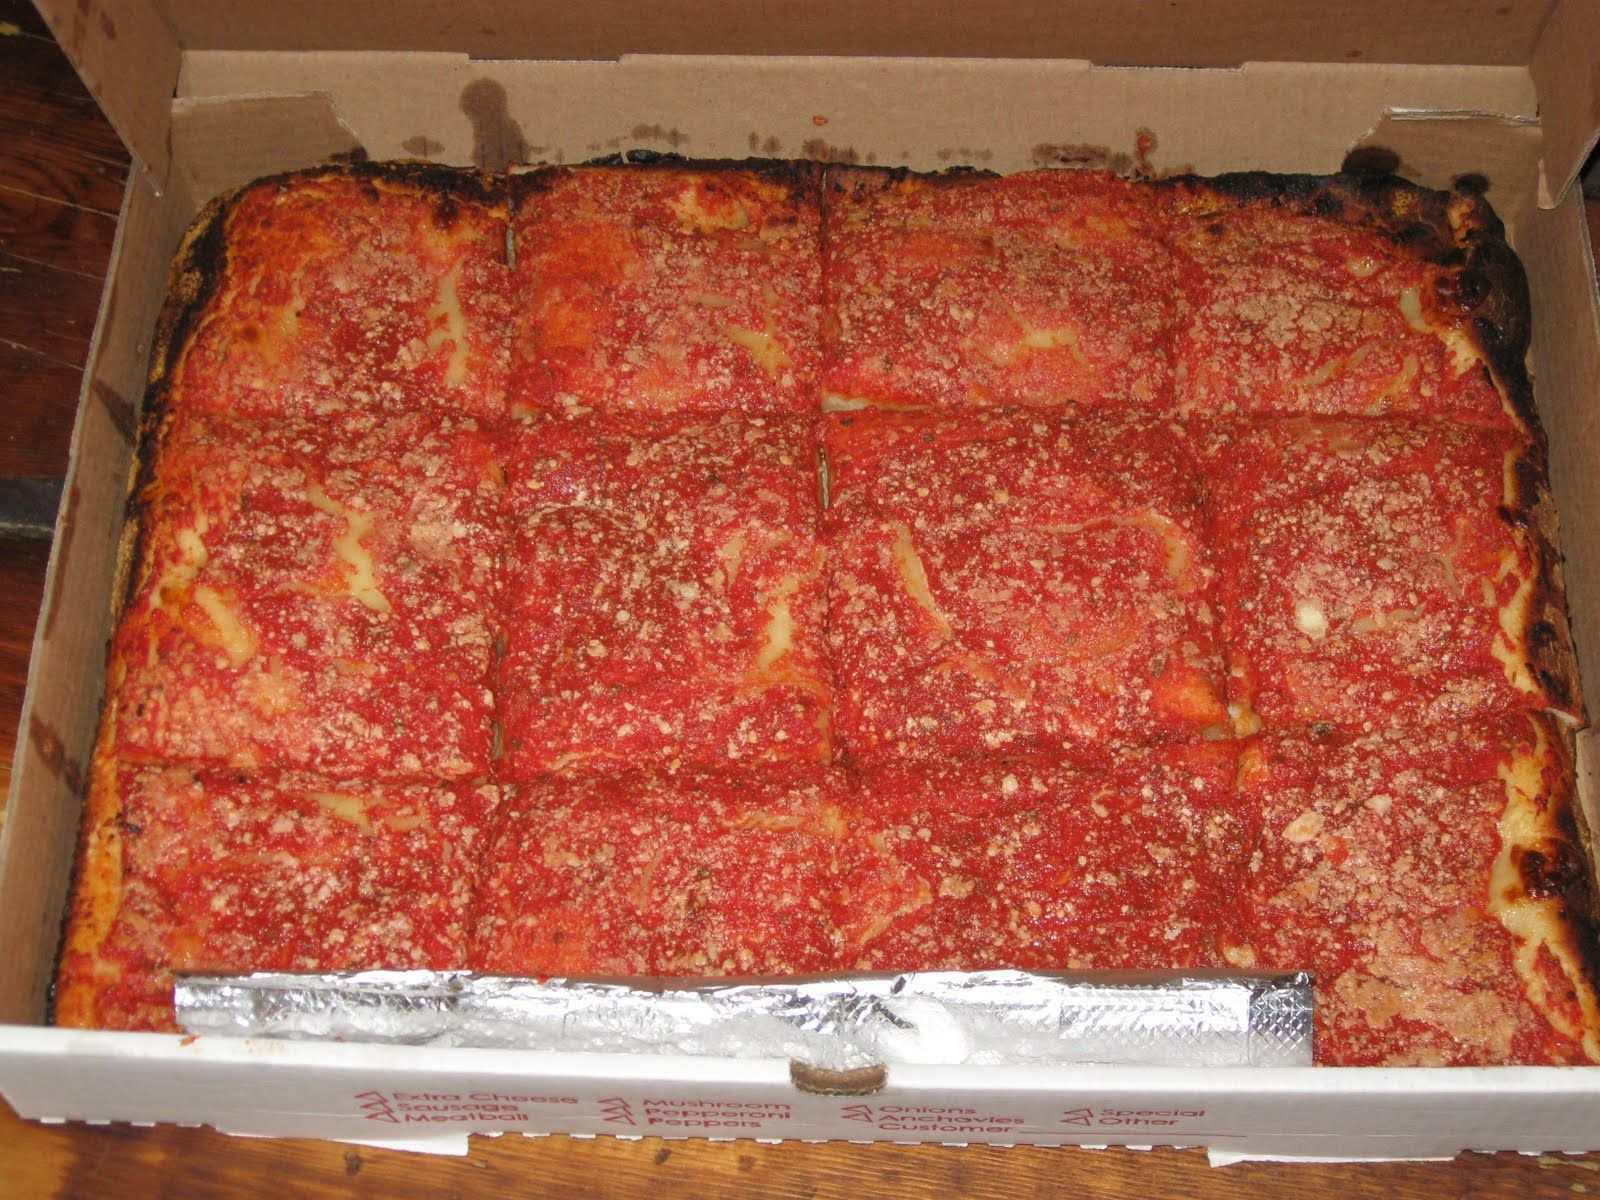 Microcosm K 2010 Nyc Pizza Conquest Part 2 Good Pizza Food Favourite Pizza